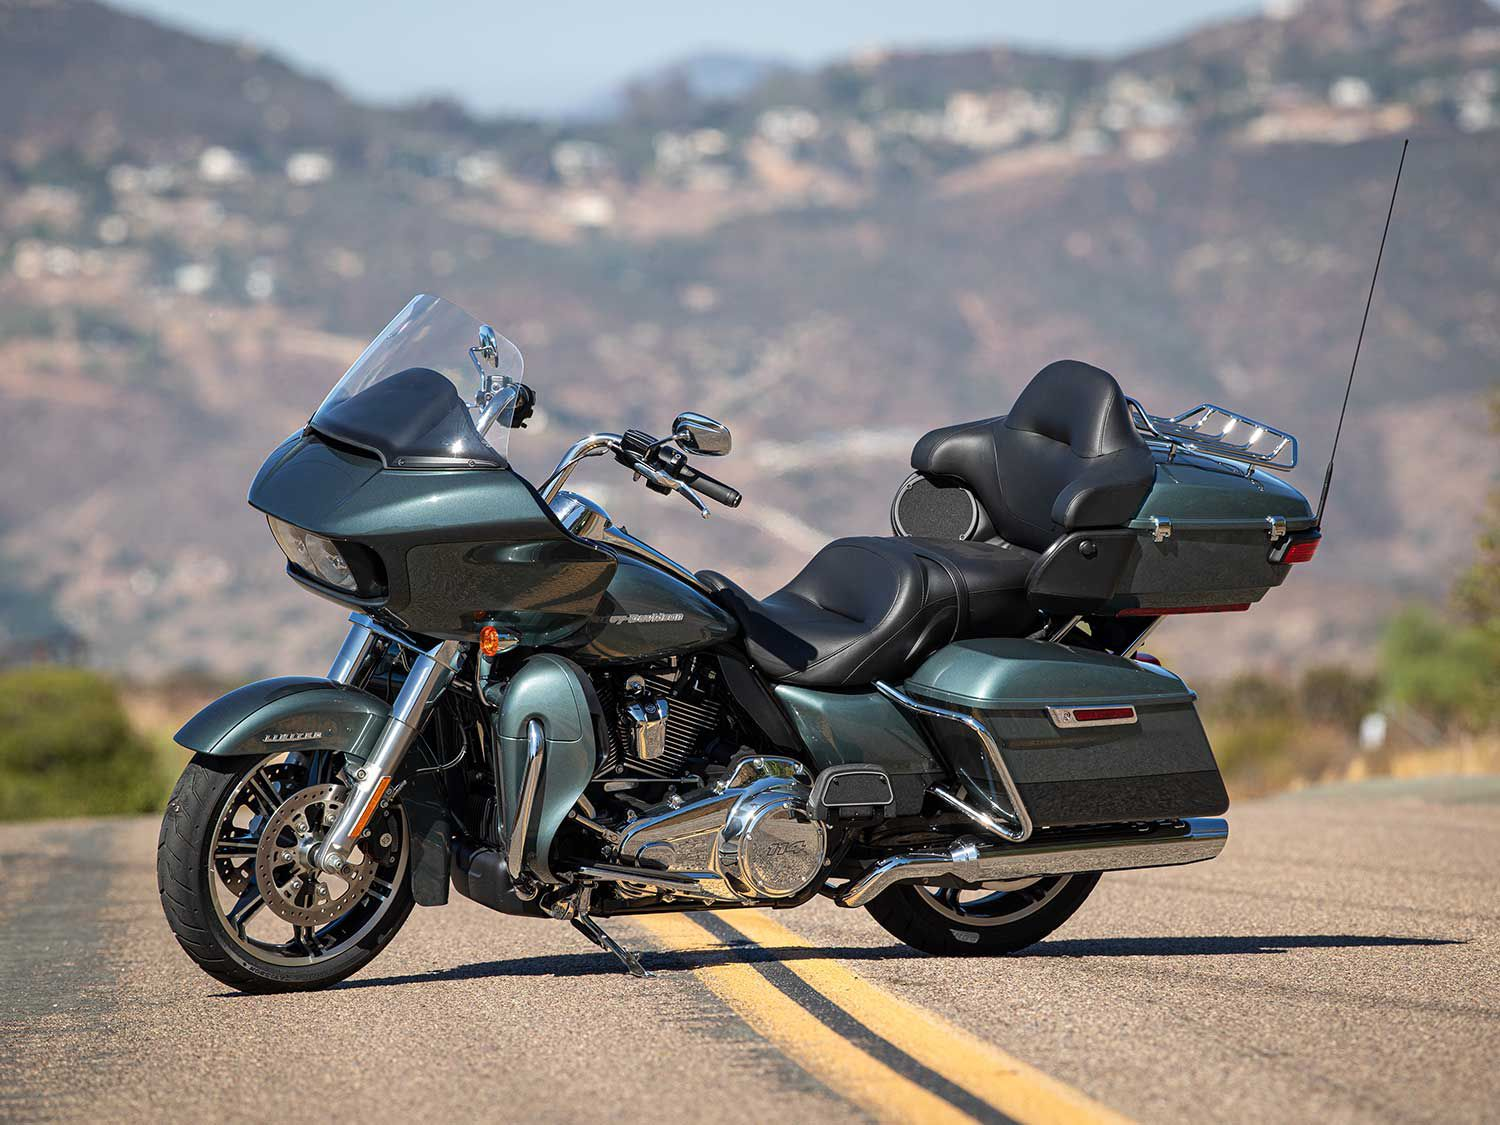 Two-tone paint options for the Road Glide Limited start at $29,349.